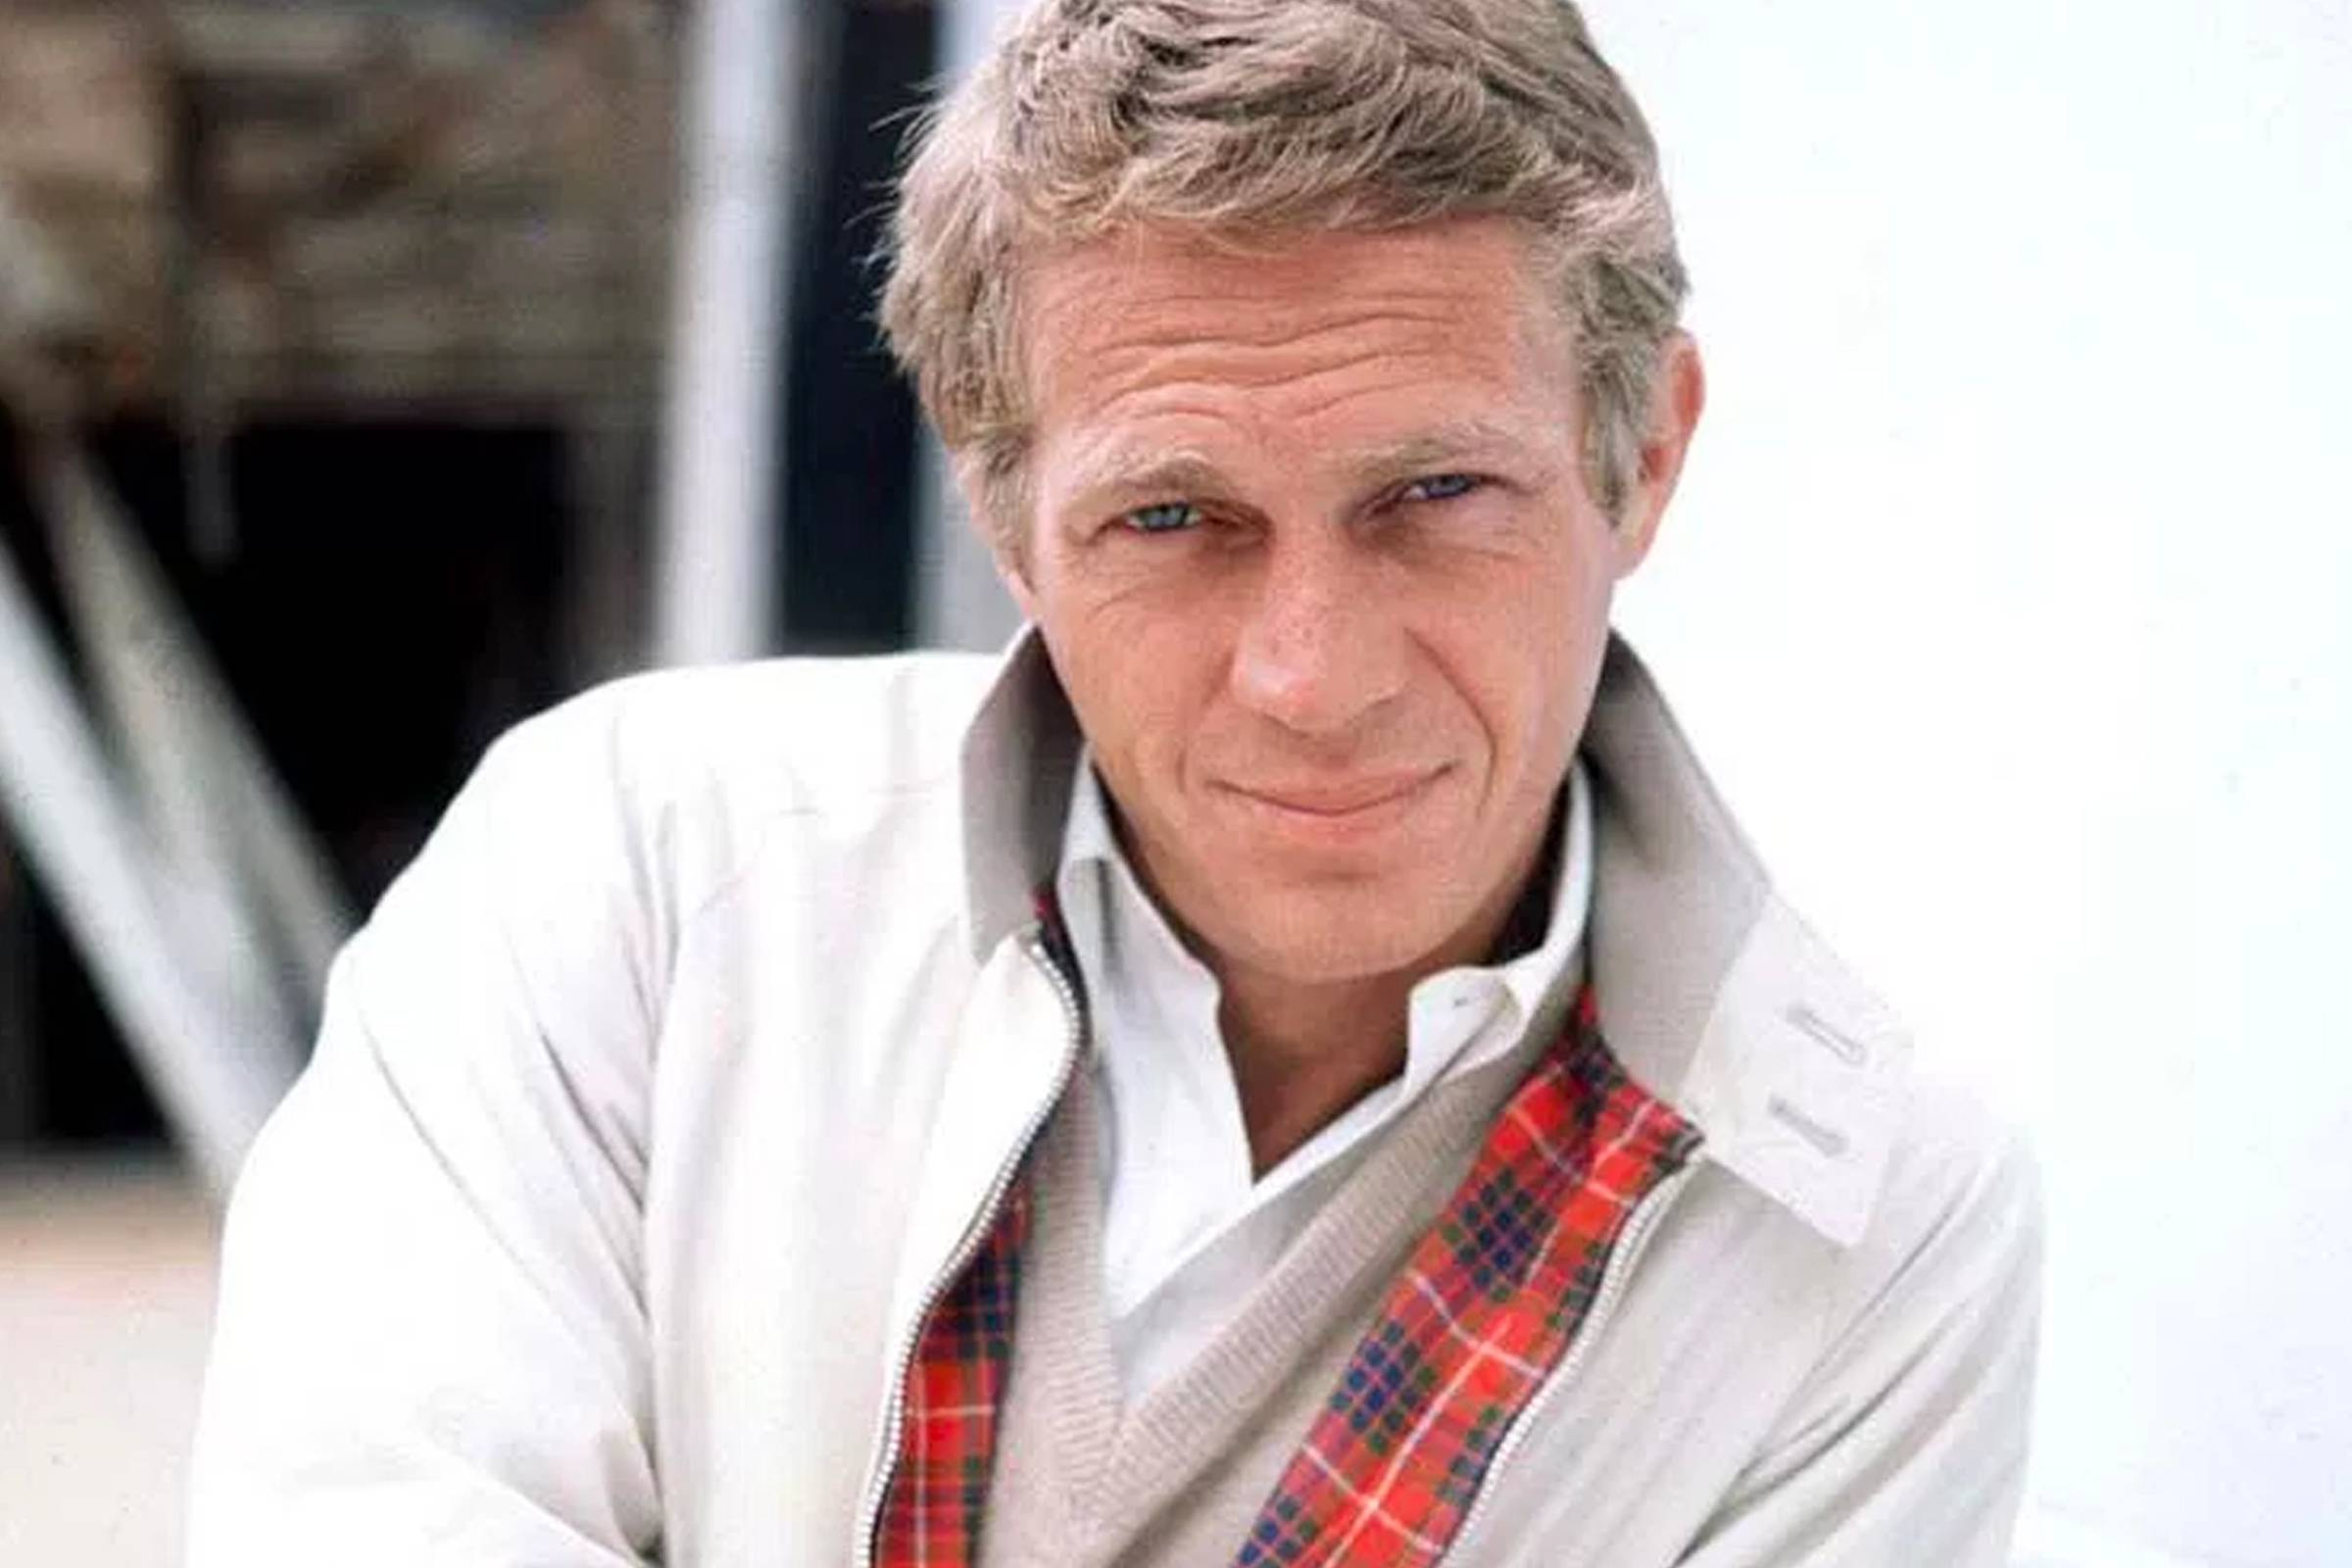 ec71d9179e9b Tags: jack-purcell, converse, military-fashion, persol, barbour, movies,  steve-mcqueen